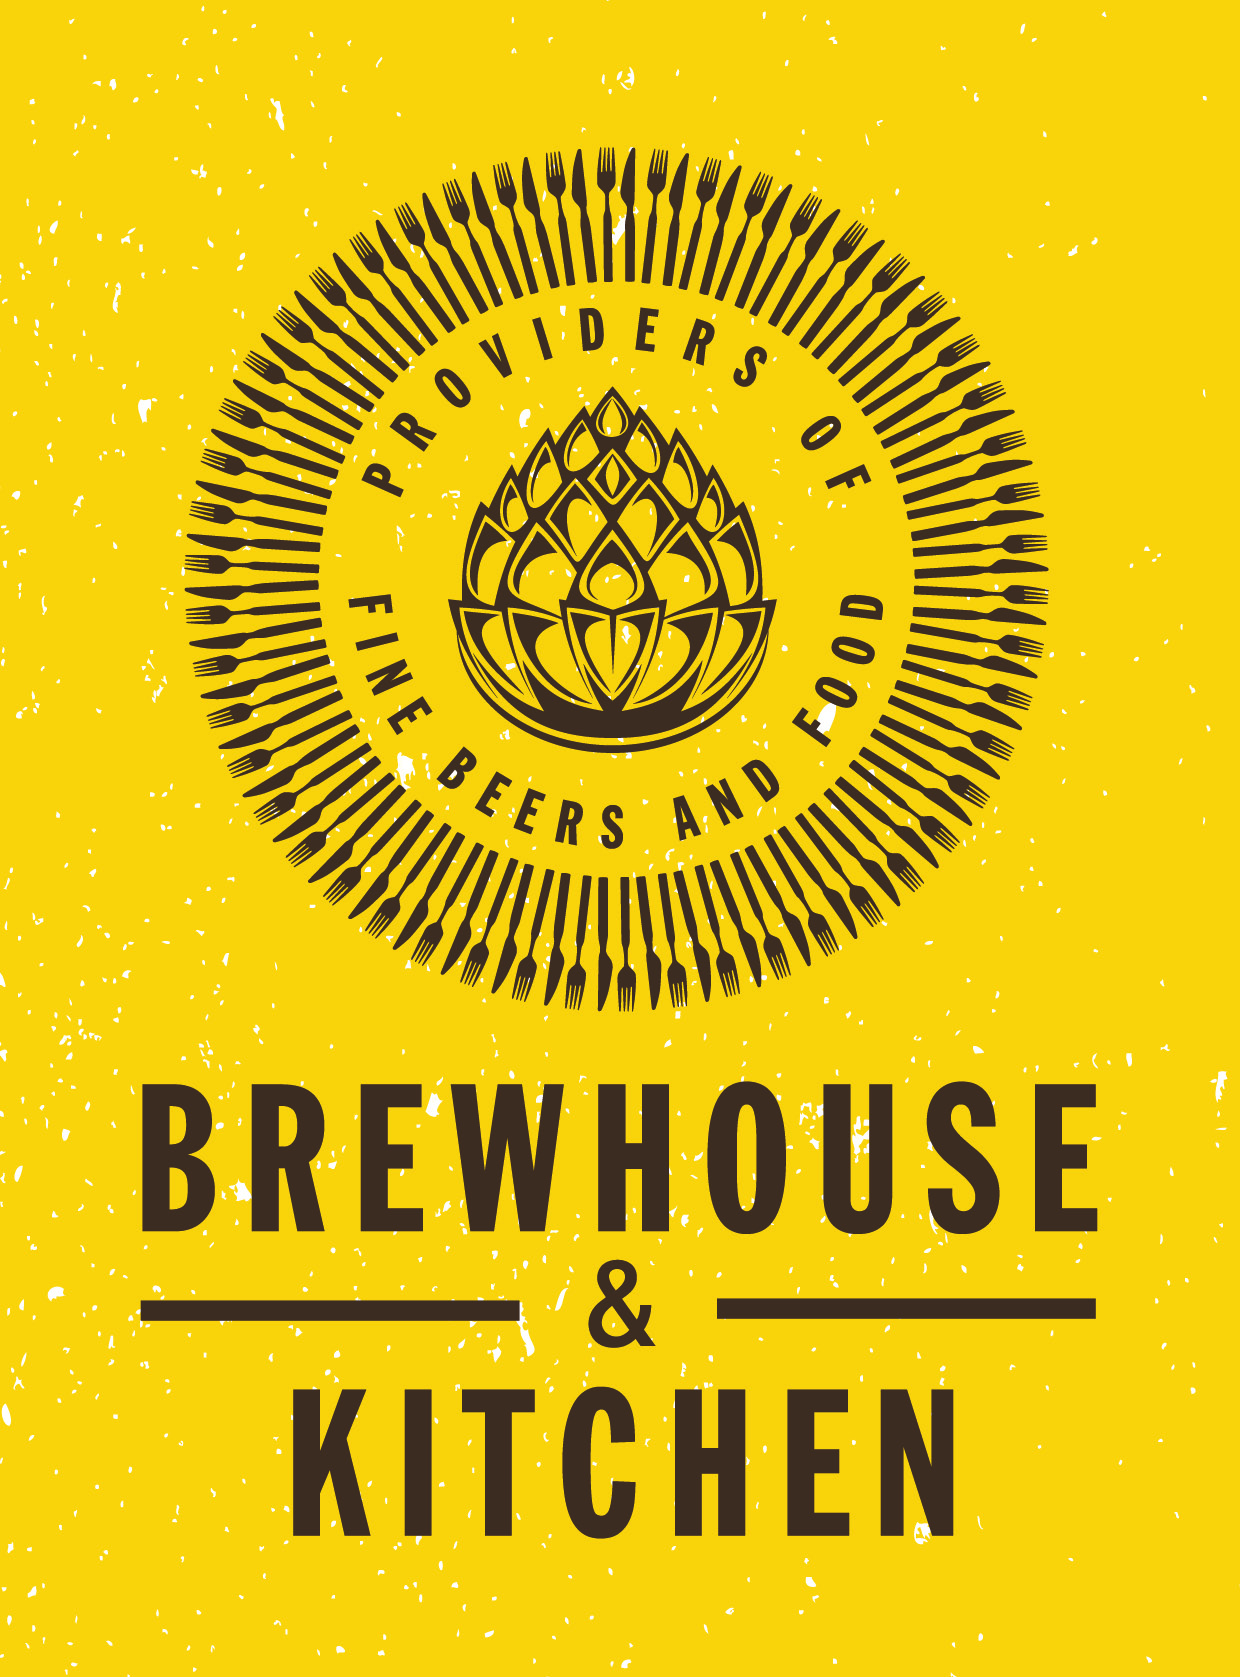 Brewhouse & Kitchen Bournemouth